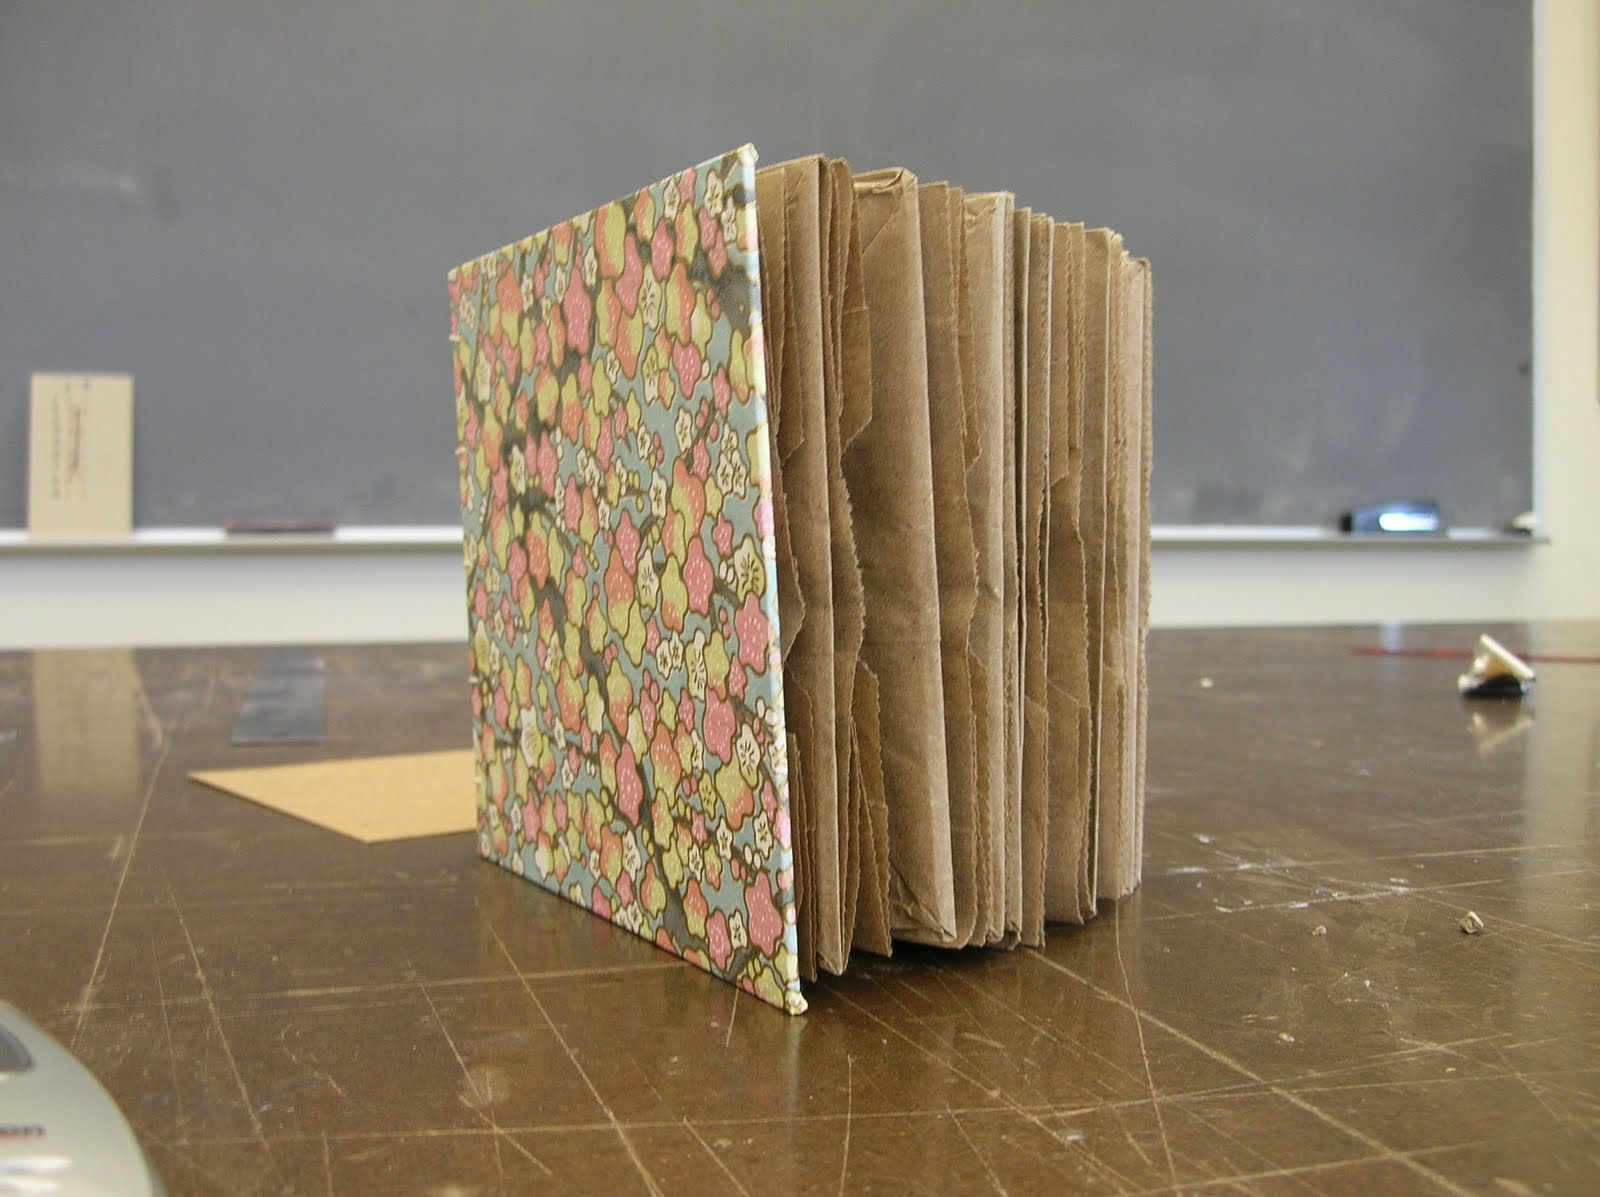 how to make a sack out of paper